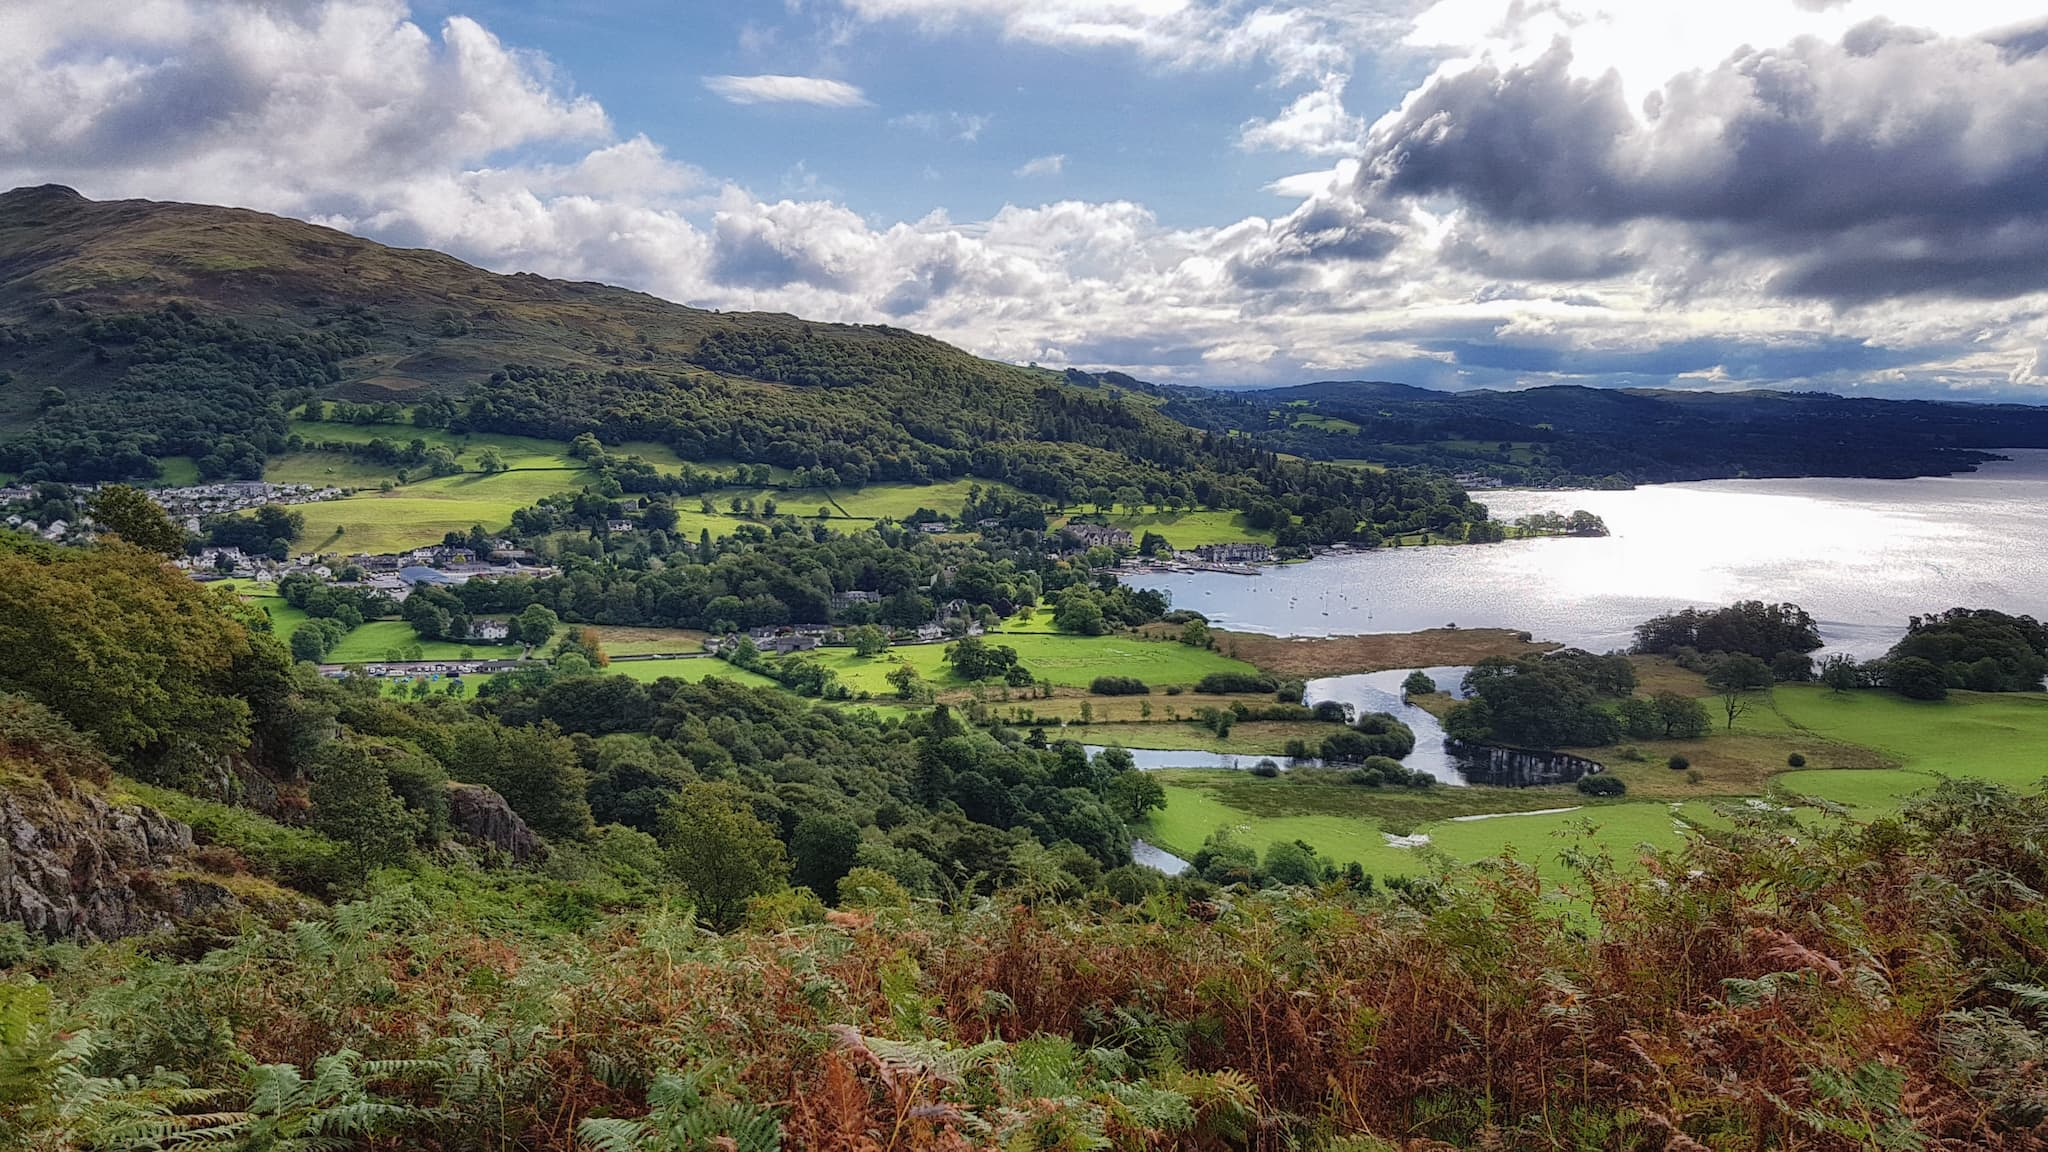 Head up Nanny's Brow to hike around Loughrigg, one of the more popular autumn walks